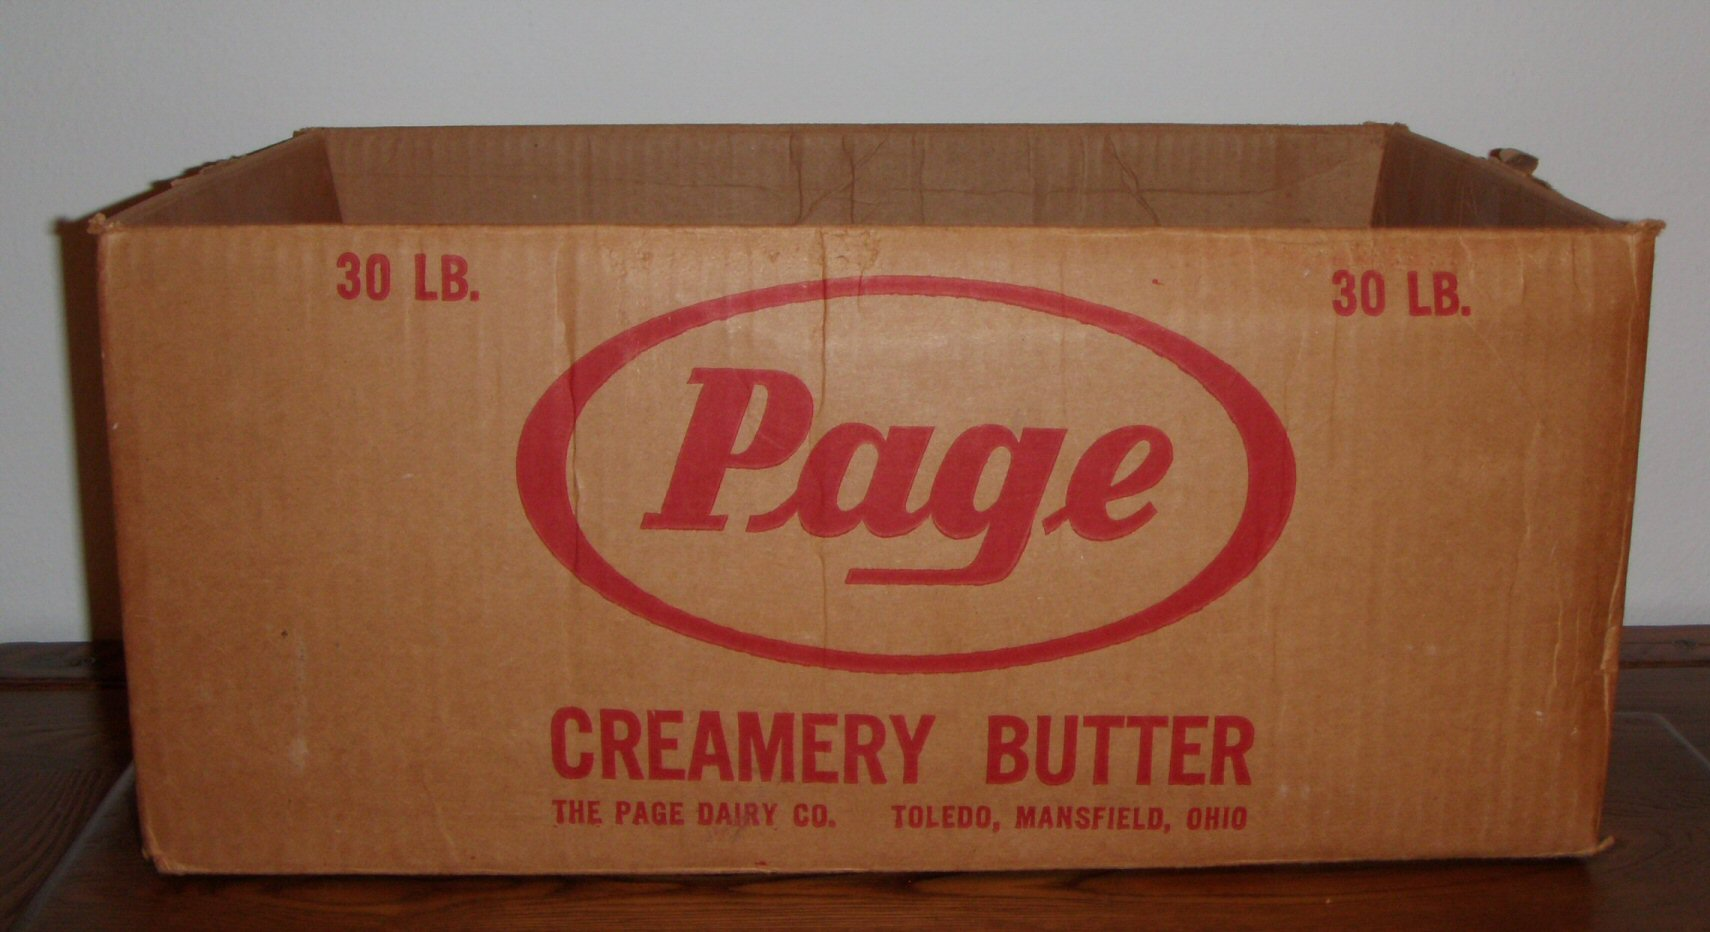 Page Dairy Creamery Butter Cardboard Box